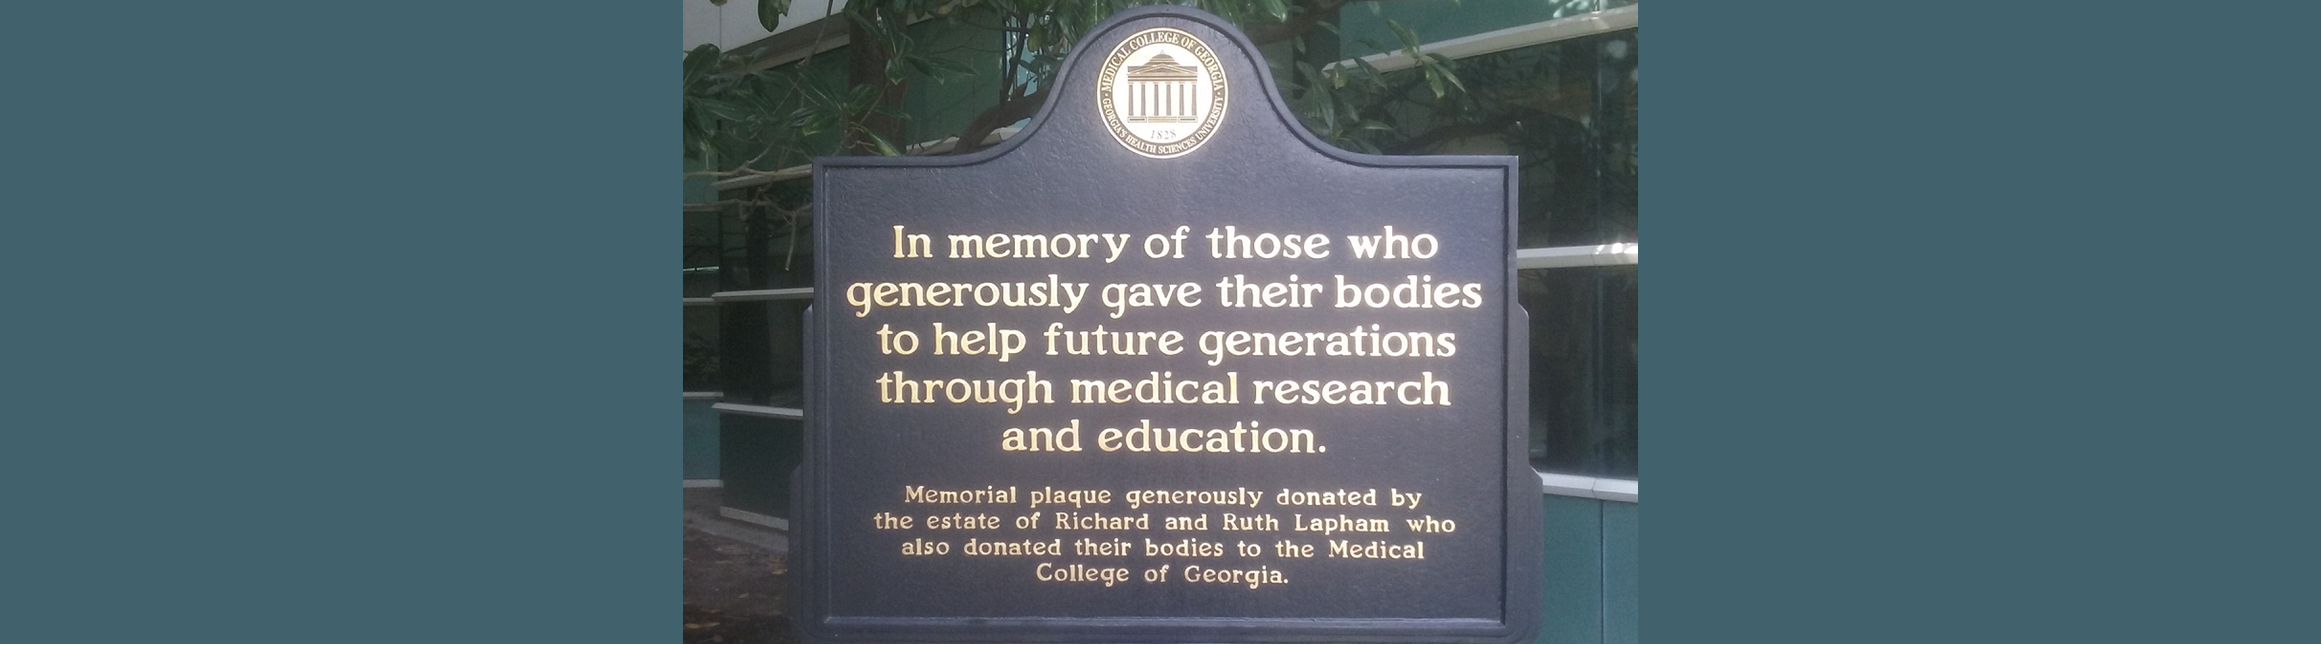 "Plaque with MCG logo that reads: ""In memory of those who generously gave their bodies to help future generations through medical research and education. Memorial plaque generously onated by the estate of Richard and Ruth Lapham who also donated their bodies to the Medical College of Georgia."""